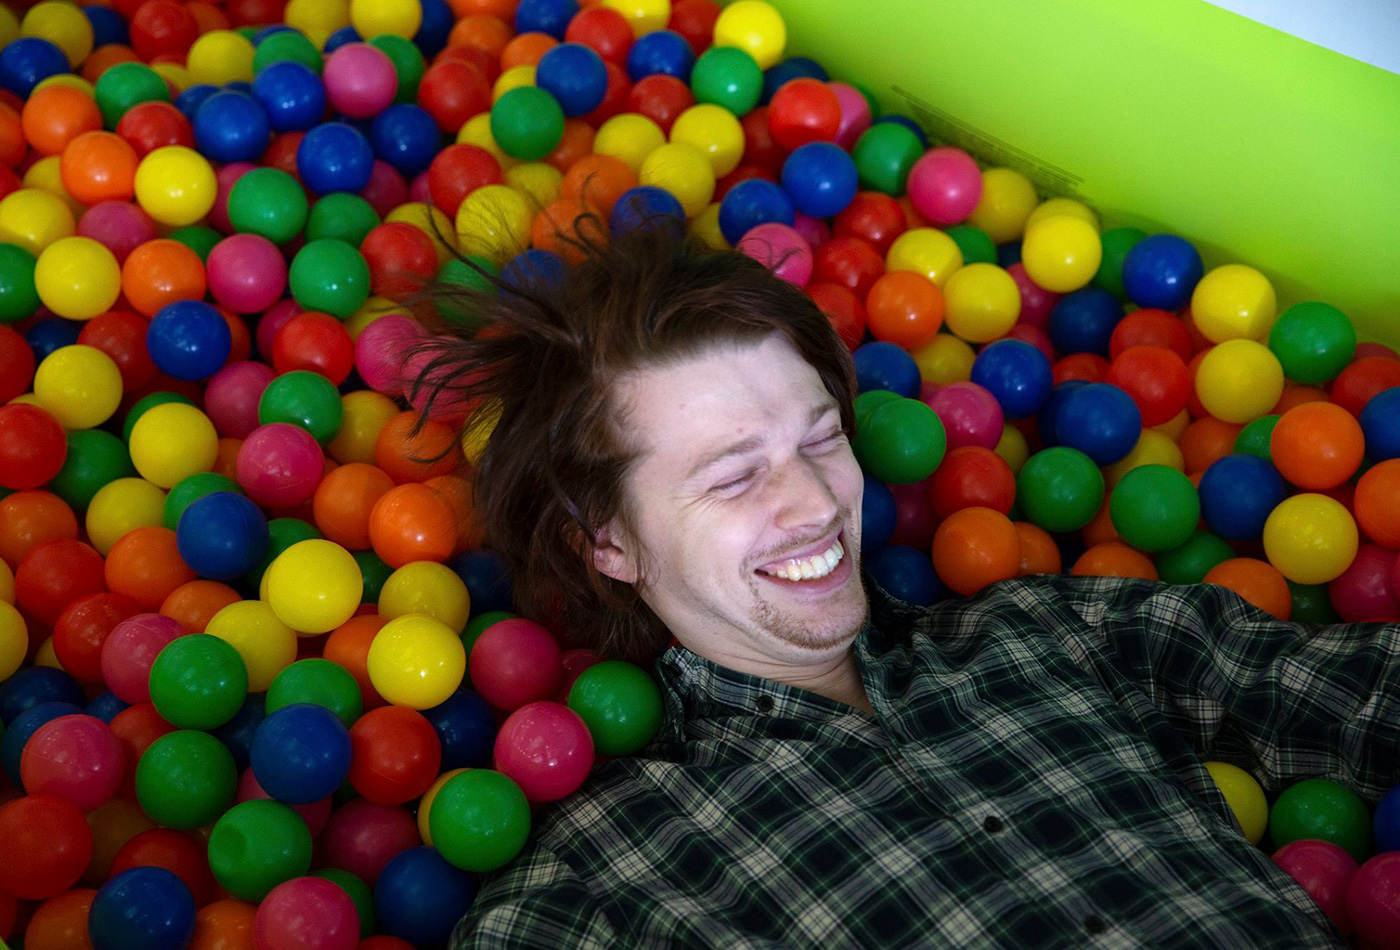 A student smiles in a ball pit.